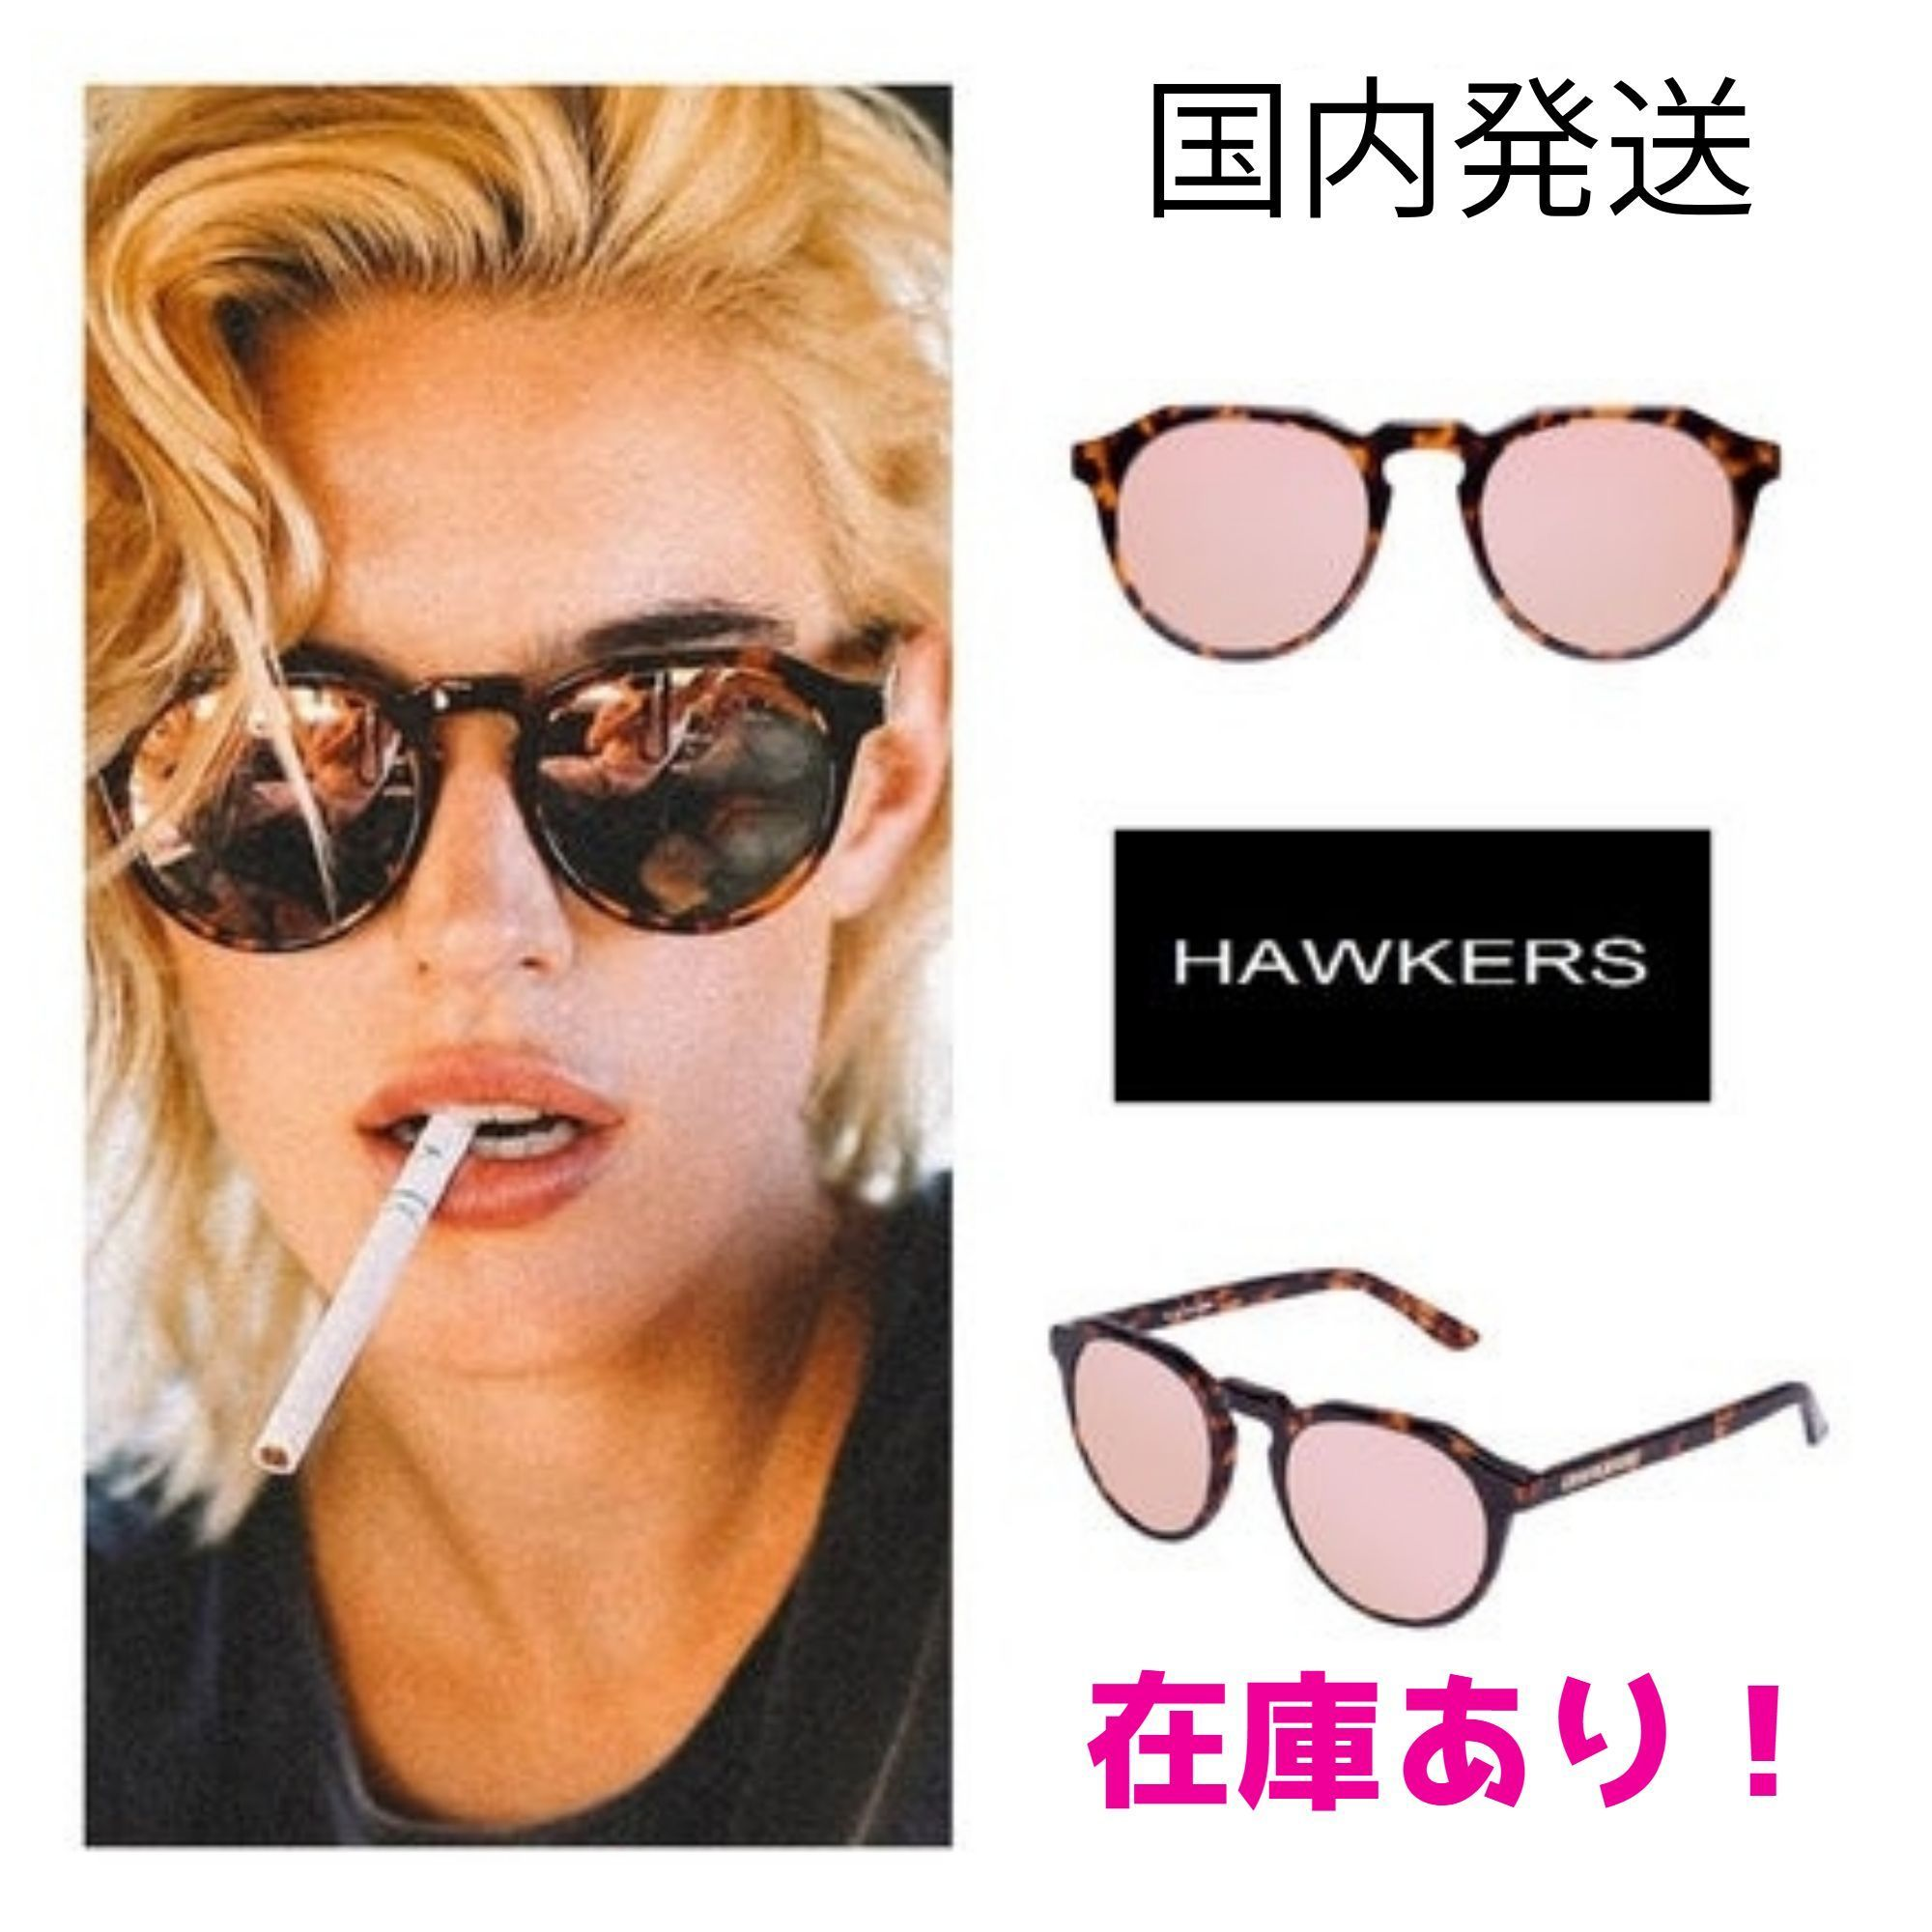 shop hawkers accessories